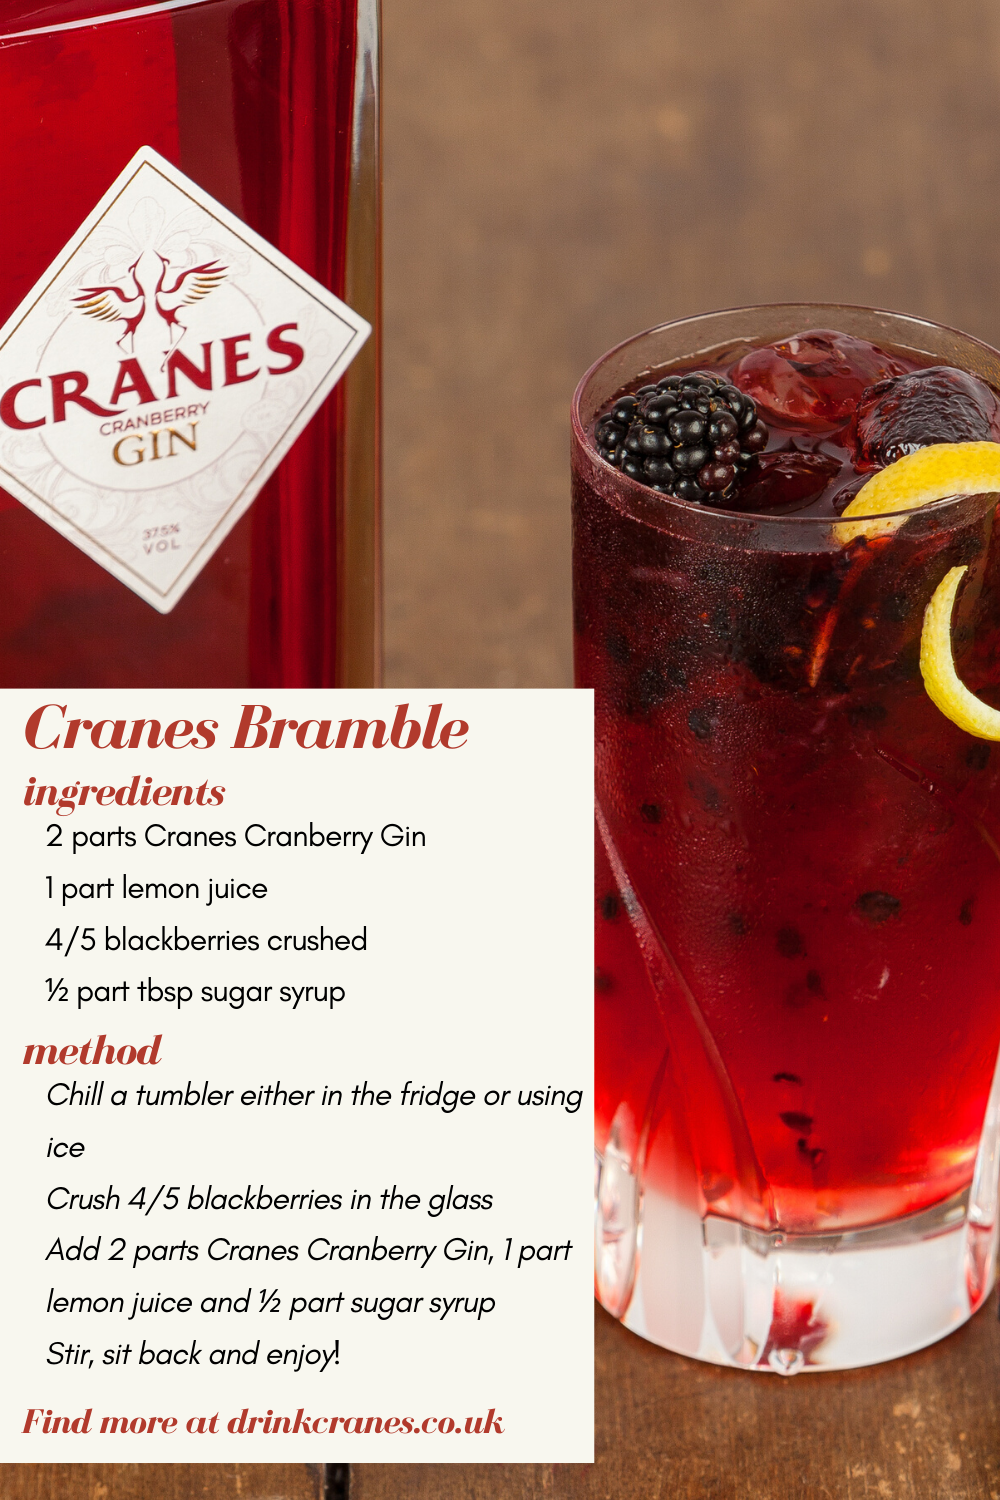 Follow these easy steps to create this delicious, classic cocktail. Cranes Cranberry Gin gives a tantalising twist to the bramble, making it smooth and fruity, yet delightfully sharp. This is the perfect cocktail to enjoy on those warm summer evenings! Available on Ocado and Amazon.    #gin #bramble #cocktail #summer #cranberry #lemon #blackberry #recipe #Cranes #Ocado #Amazon #sweet #delicious #fruity #sharp #gincocktail